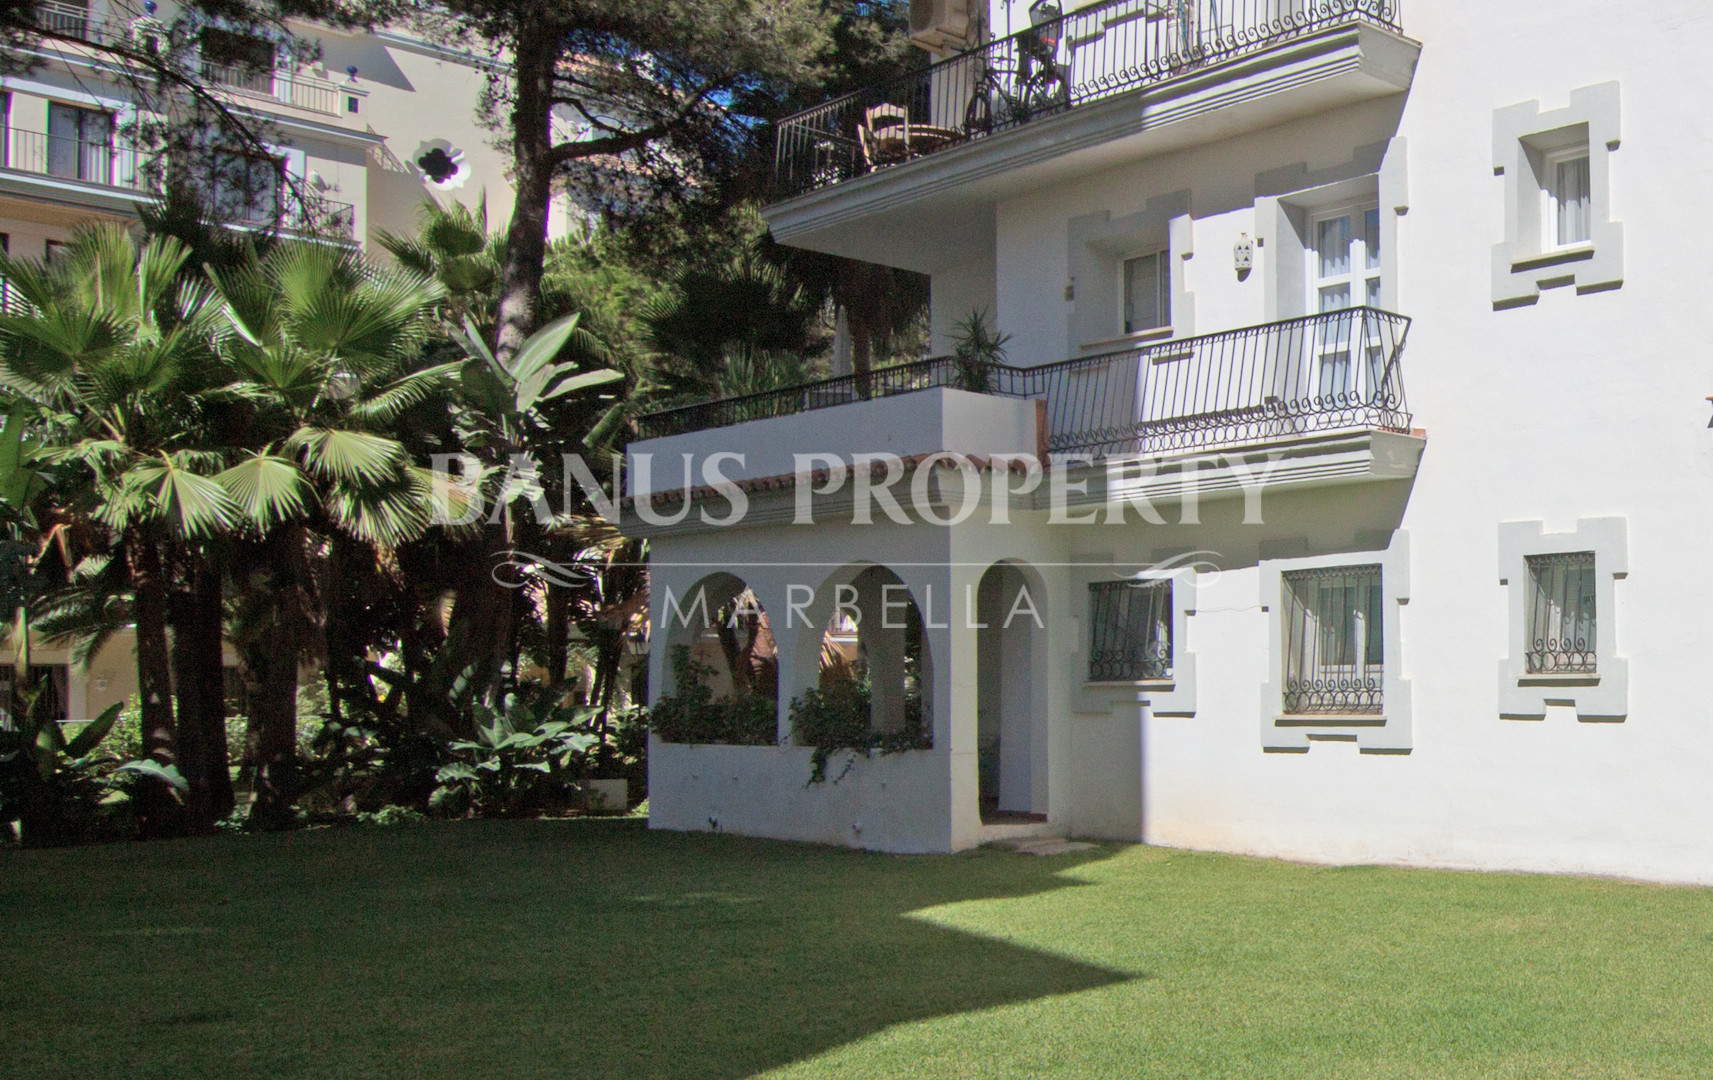 3 bedroom ground floor apartment for sale by the beach in Andalucia del Mar